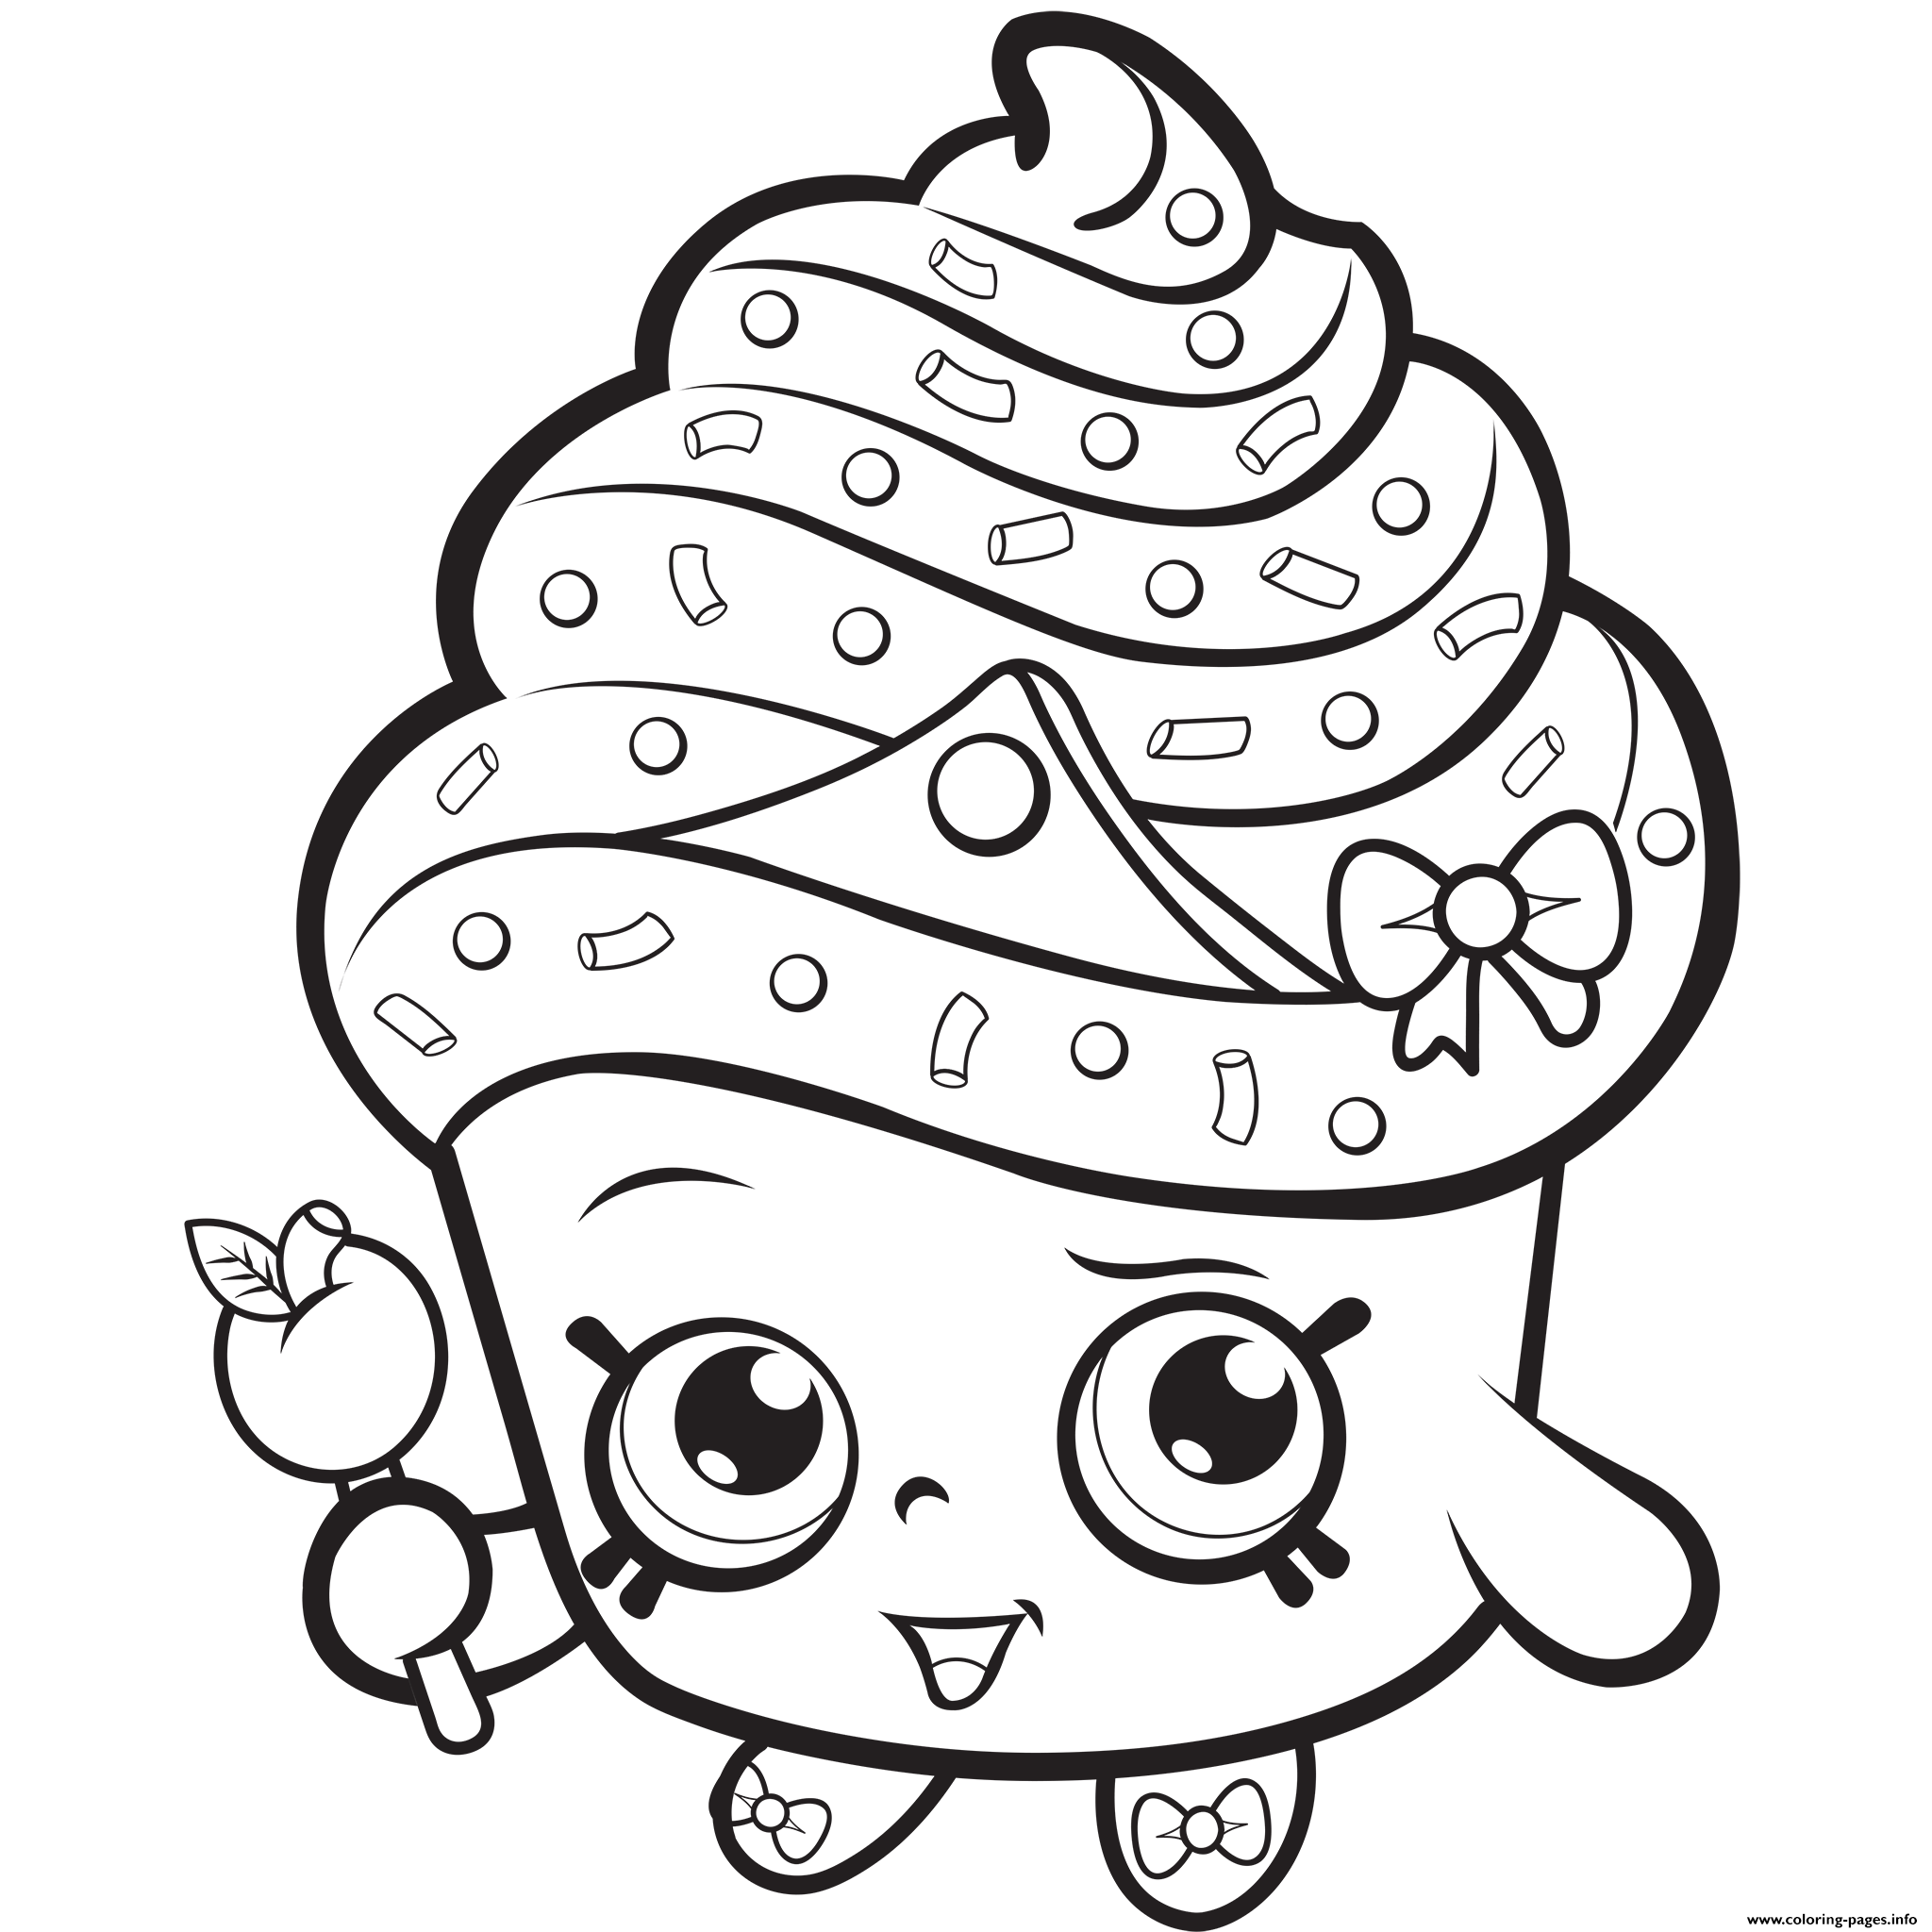 cupcake queen exclusive to